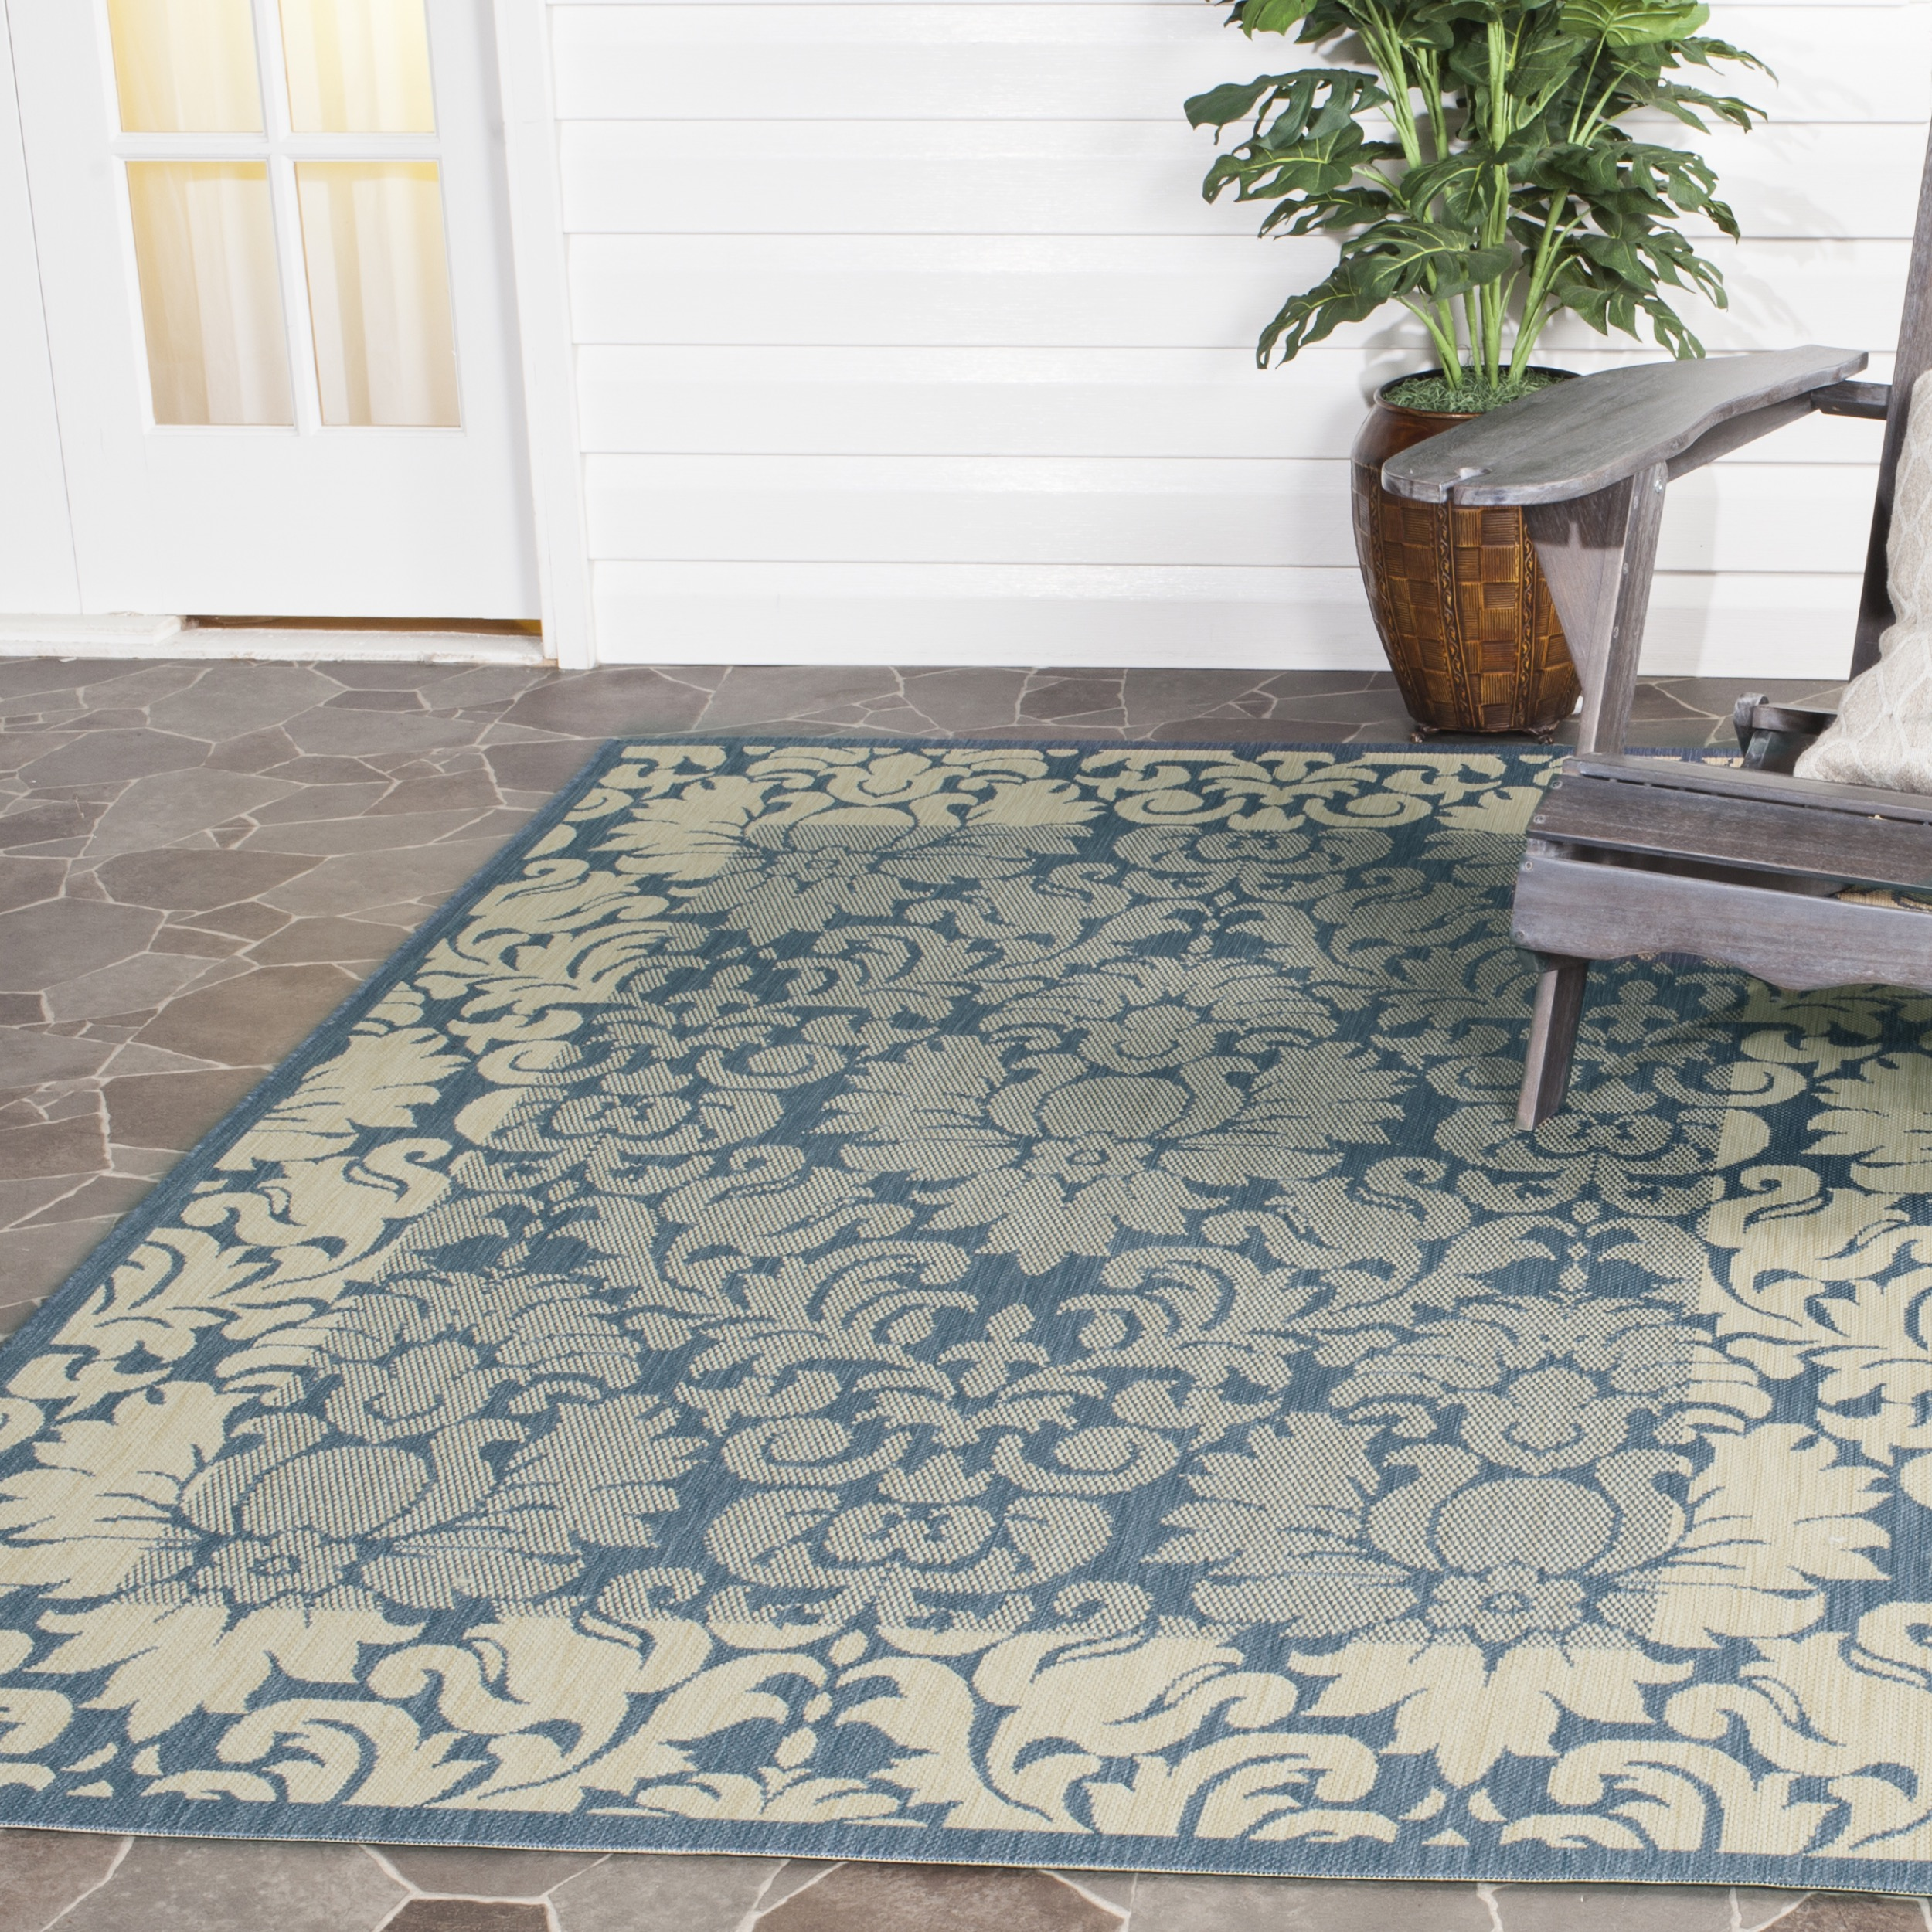 Safavieh Courtyard Dani Damask Bordered Indoor/Outdoor Area Rug